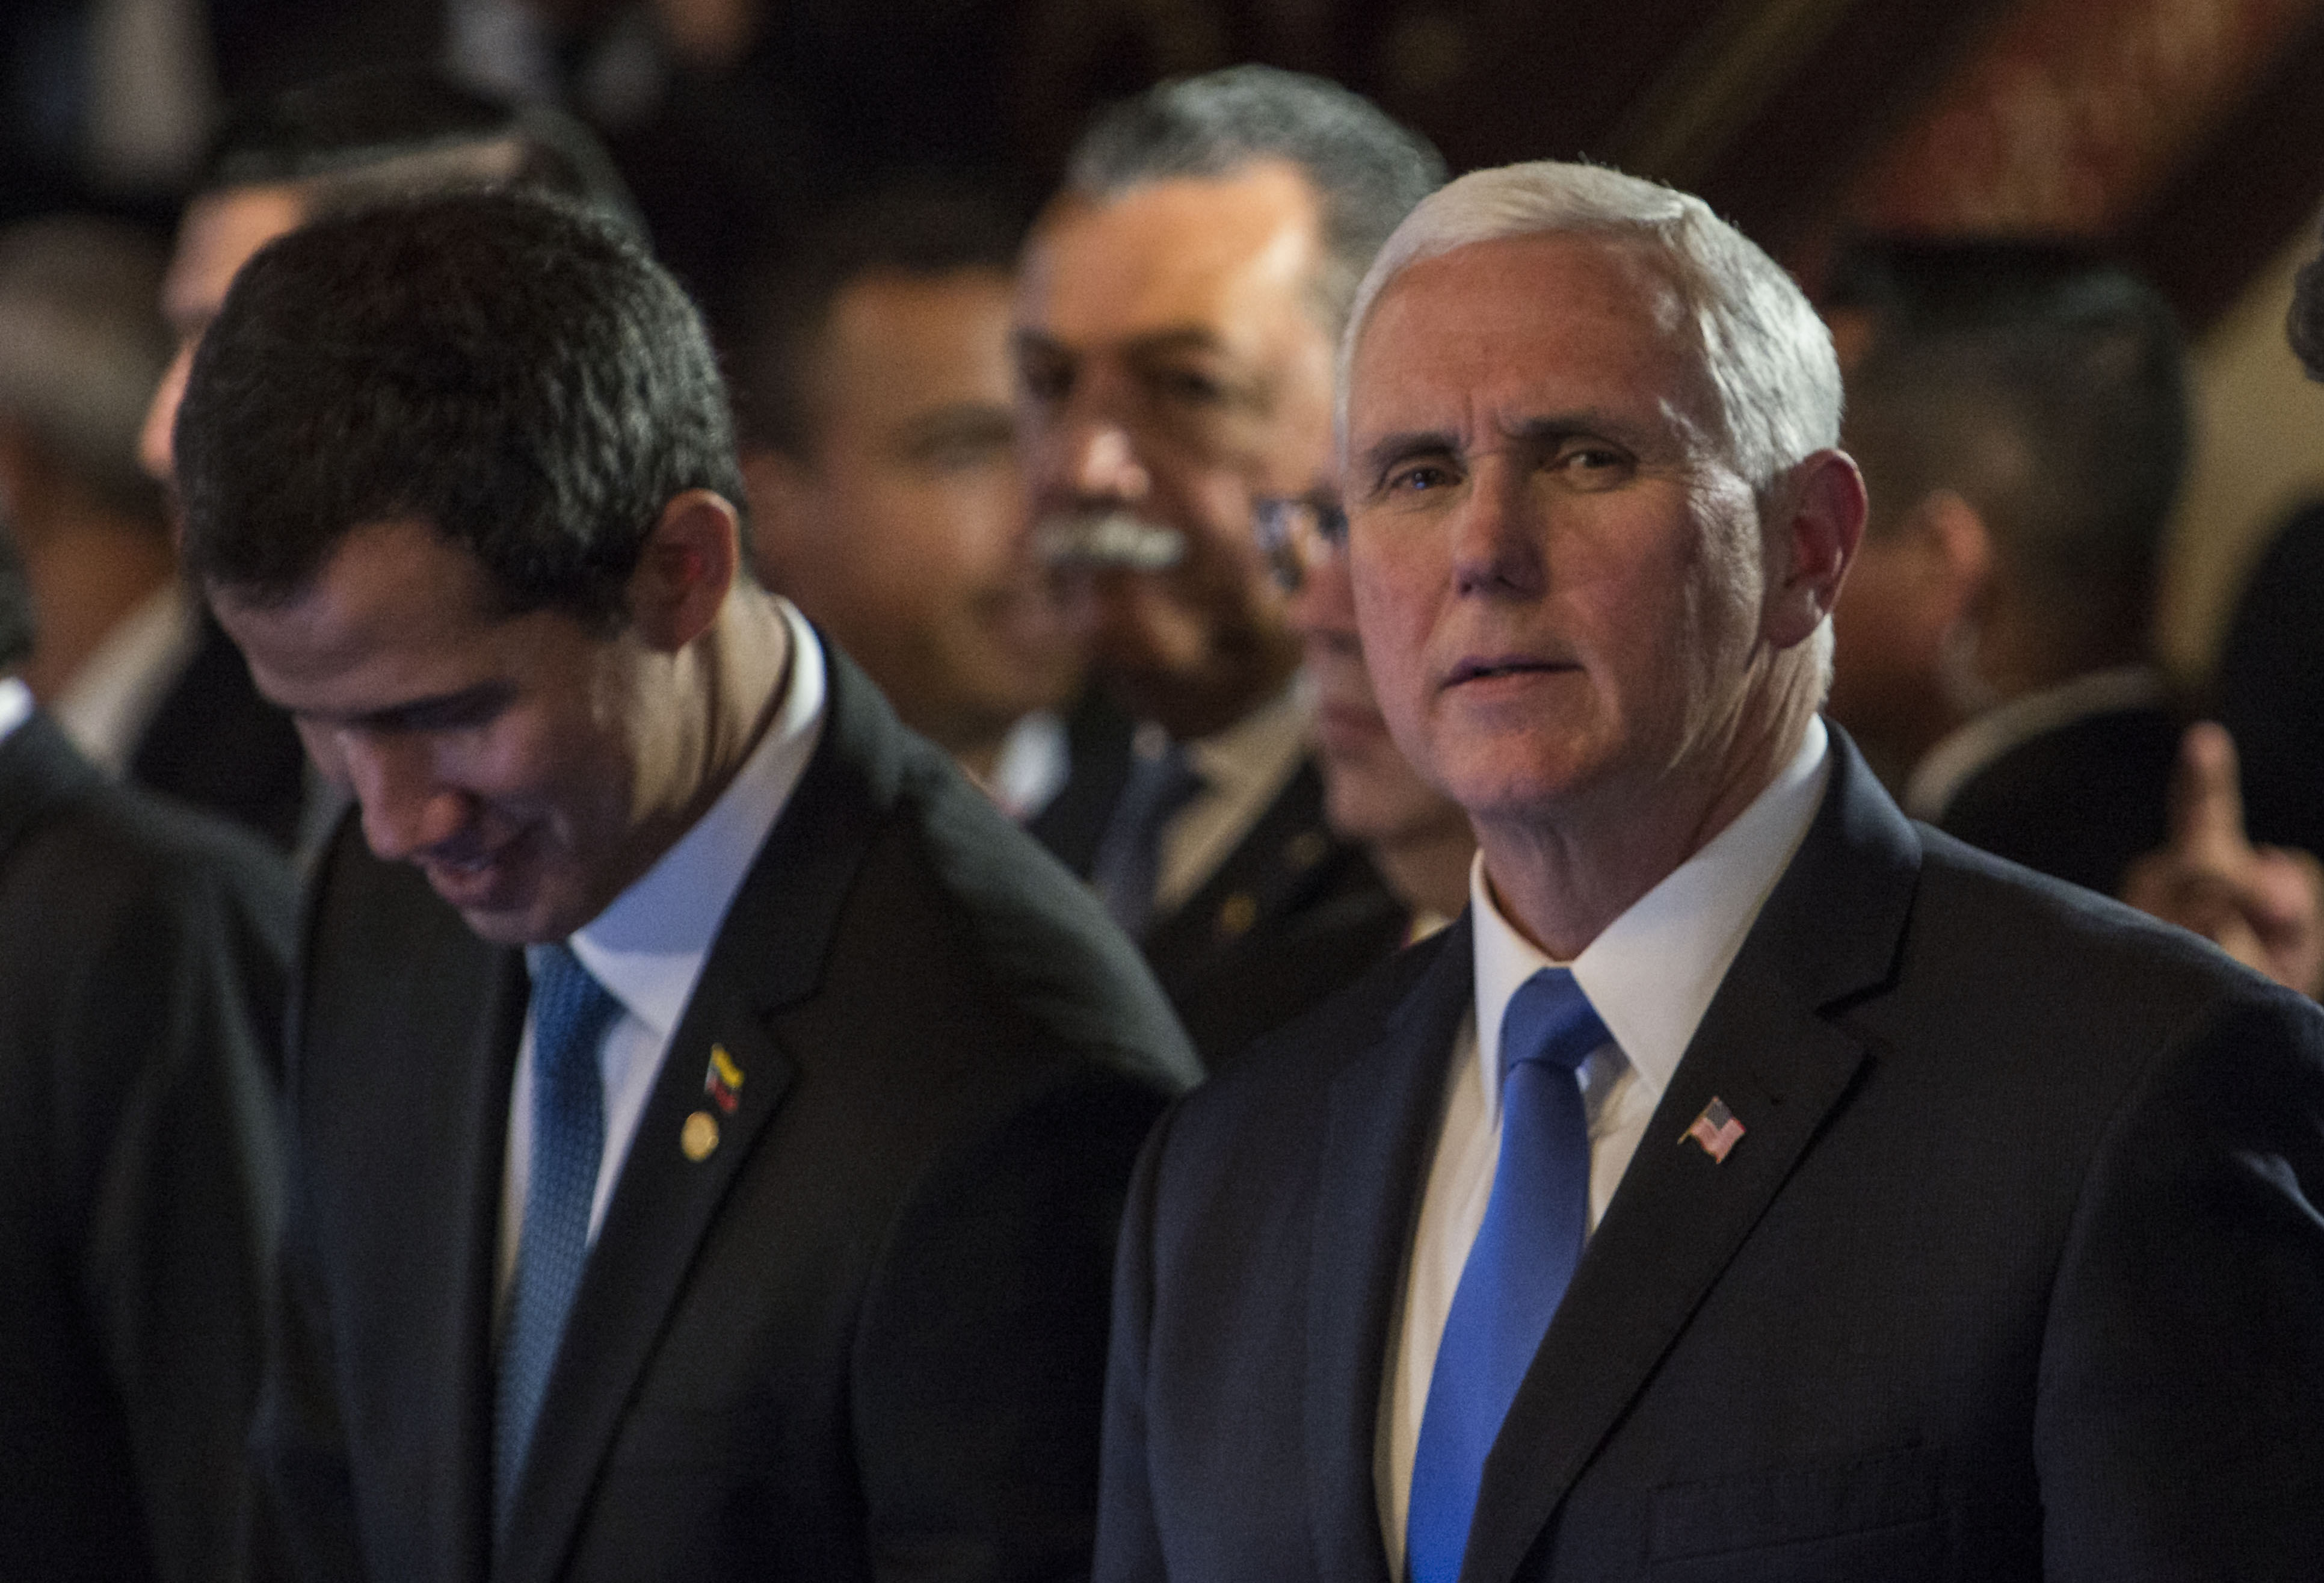 Vice President Mike Pence and Juan Guaido